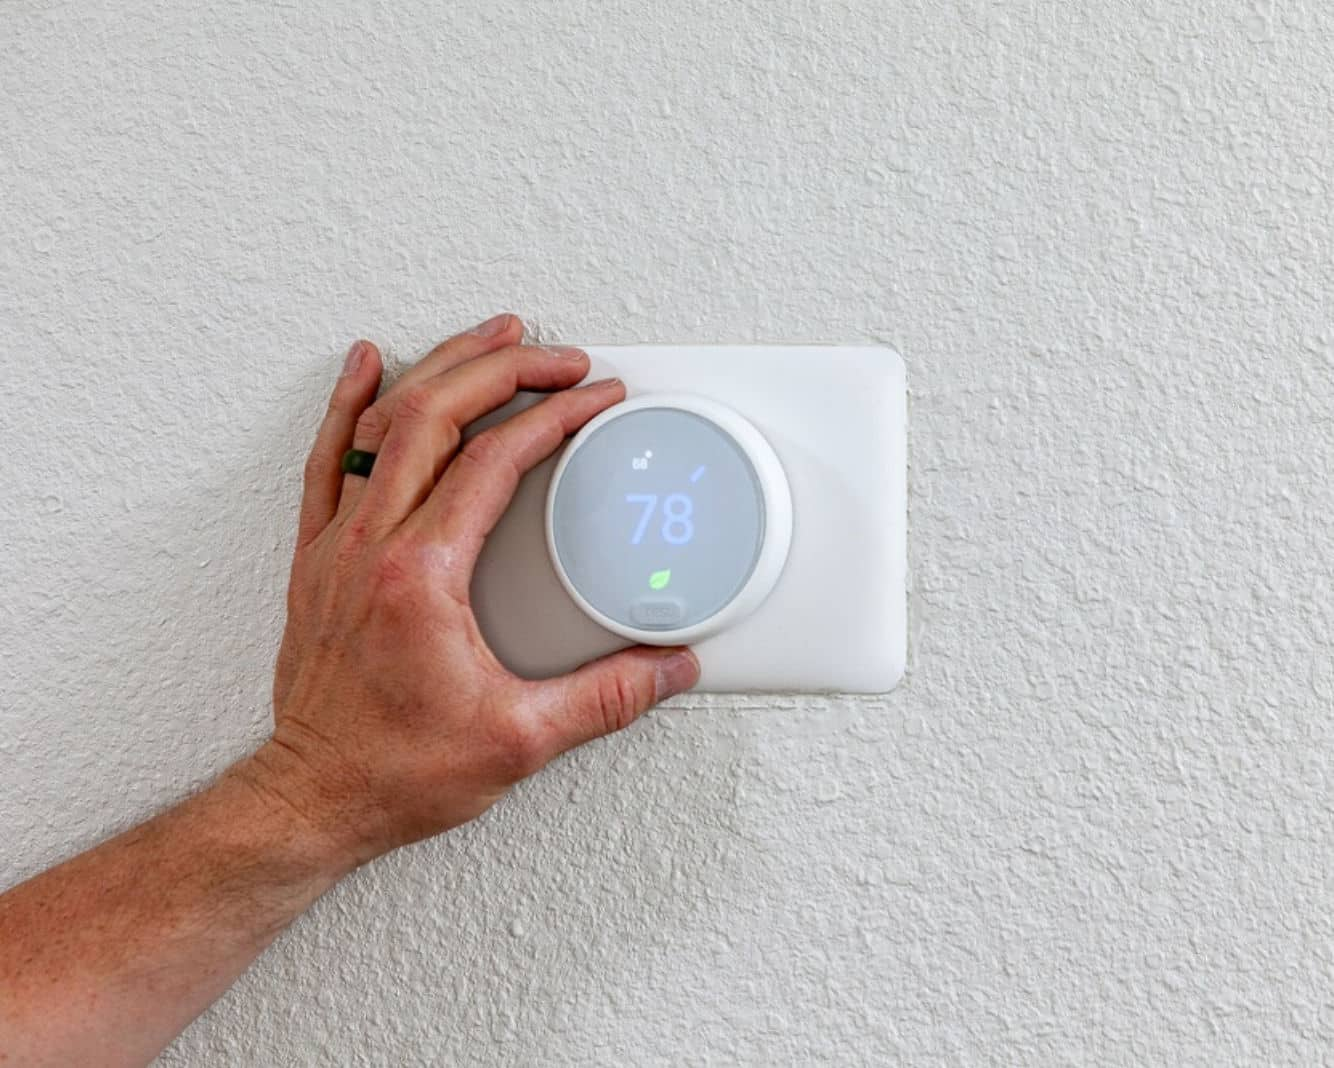 Hand turning nest thermostat